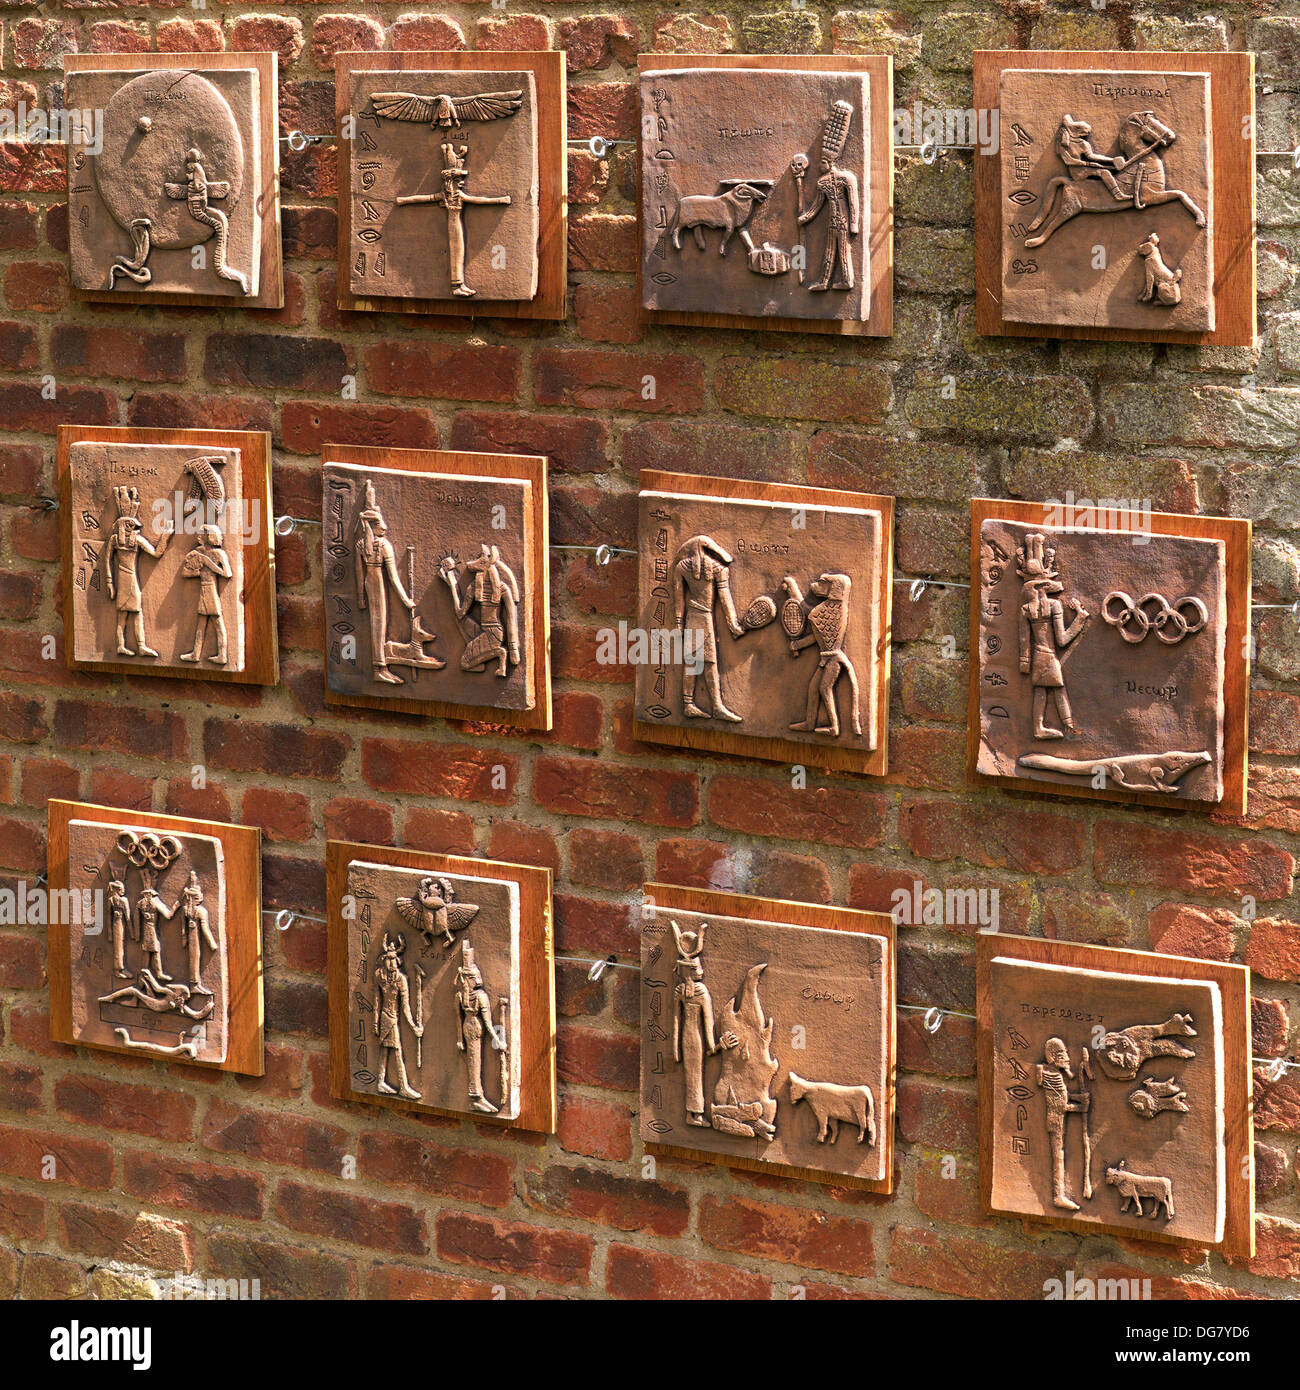 Egyptian hieroglyph inspired artwork ceramic tiles on red brick wall ...